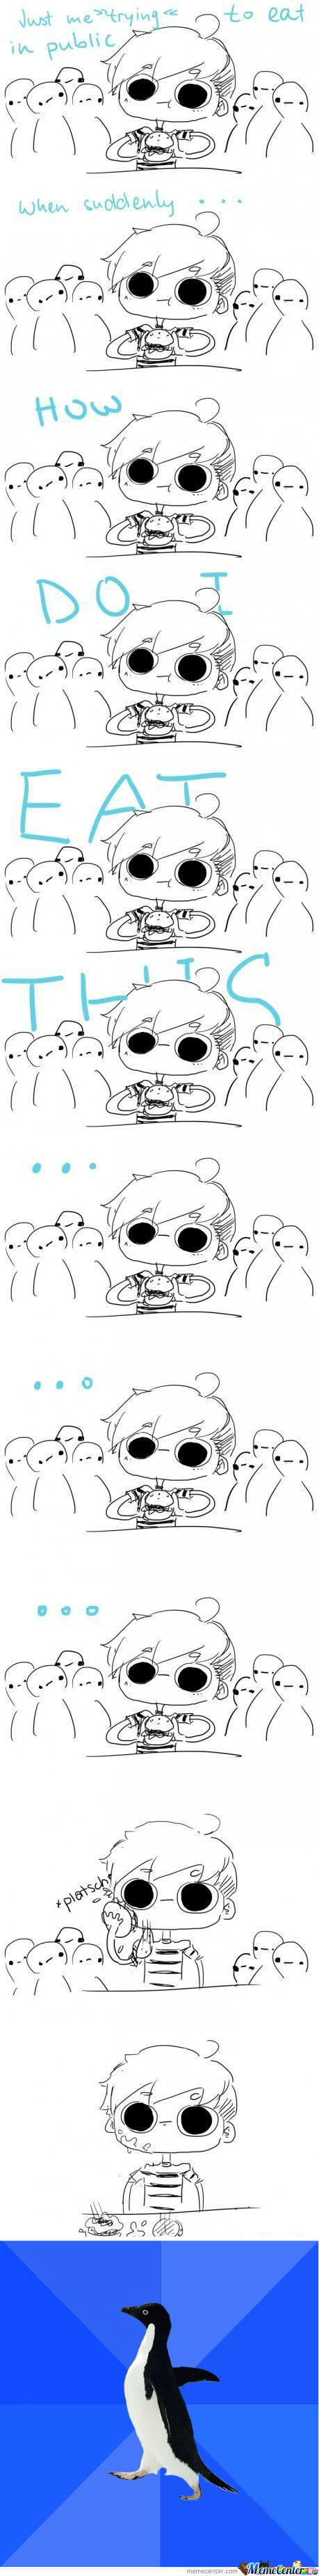 [RMX] Eating In Puplic